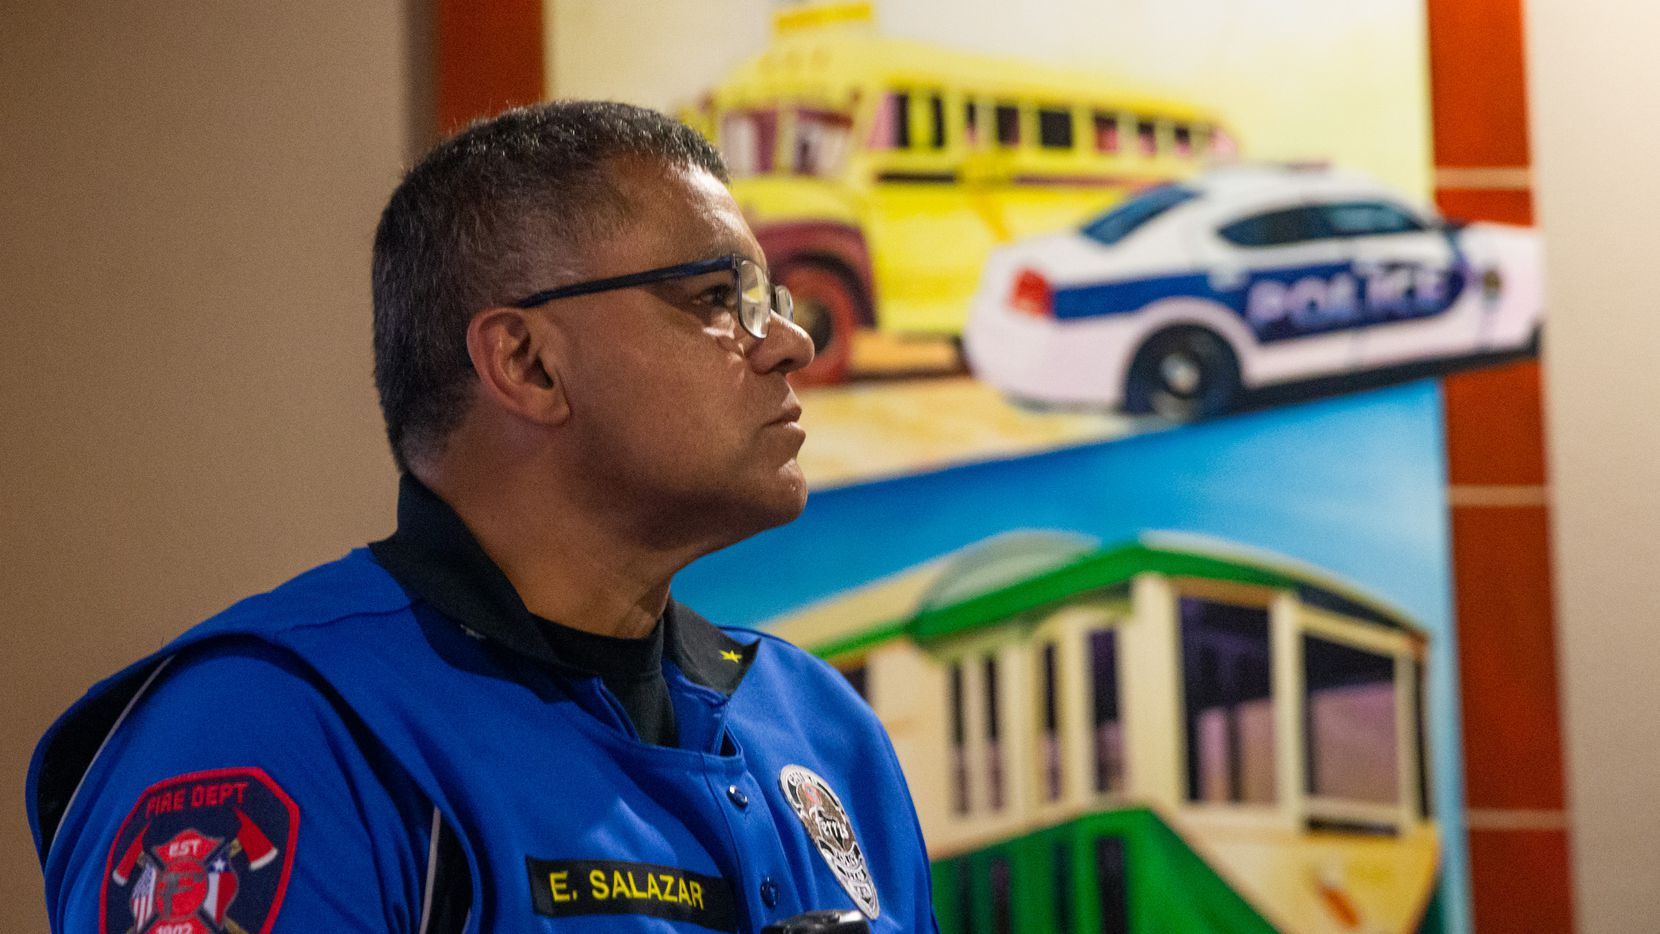 Ferris police chief Eddie Salazar waits before the city council meeting begins in Ferris, Texas, on Monday, Oct. 8, 2019. Monday's meeting included an agenda item to determine if the resignation of police chief Salazar would be accepted, and many came out to show support for Salazar. (Lynda M. Gonzalez/The Dallas Morning News)